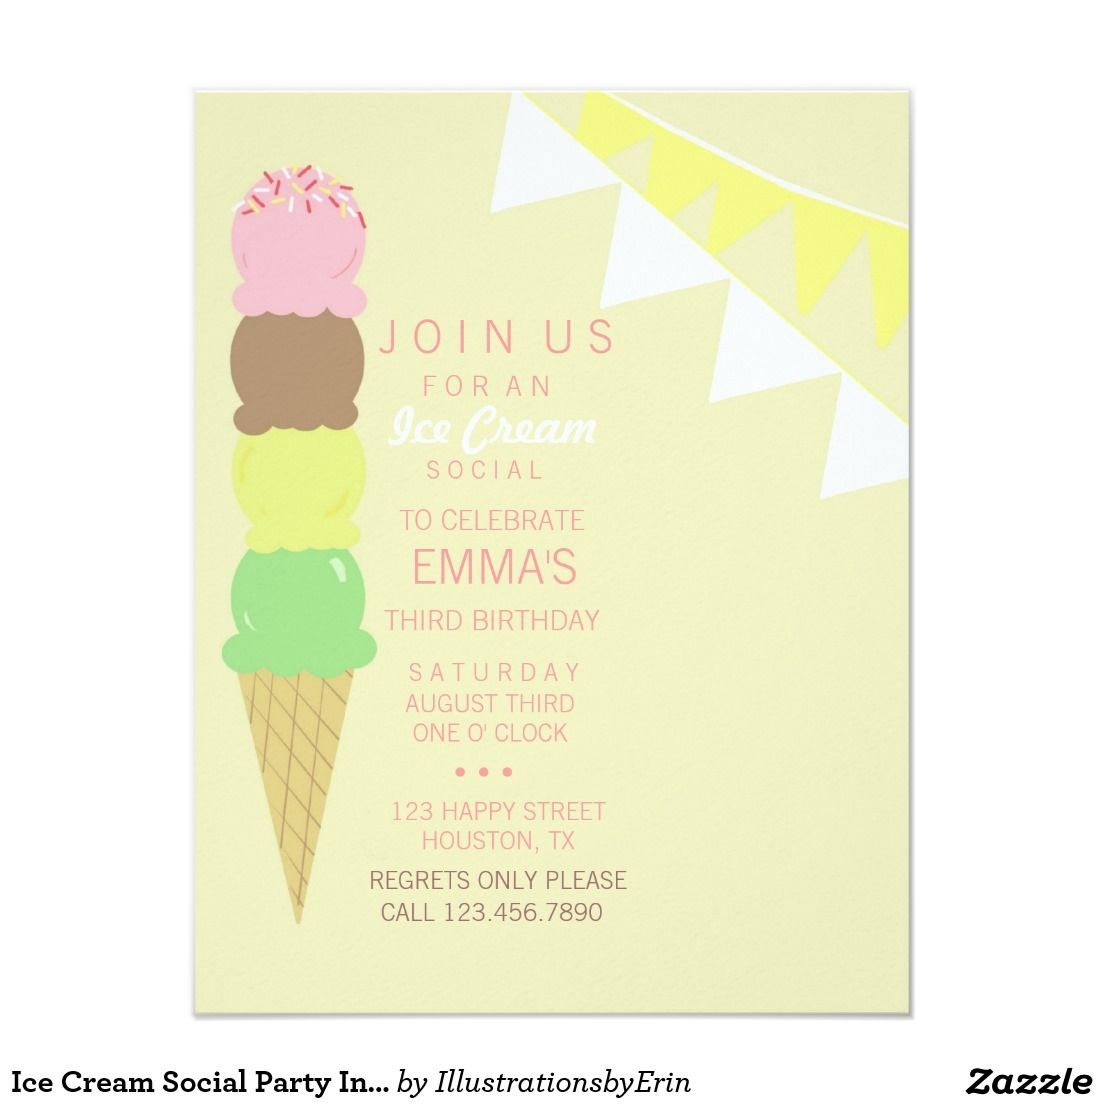 Ice Cream Social Party Invitation   Ice cream social and Party ...